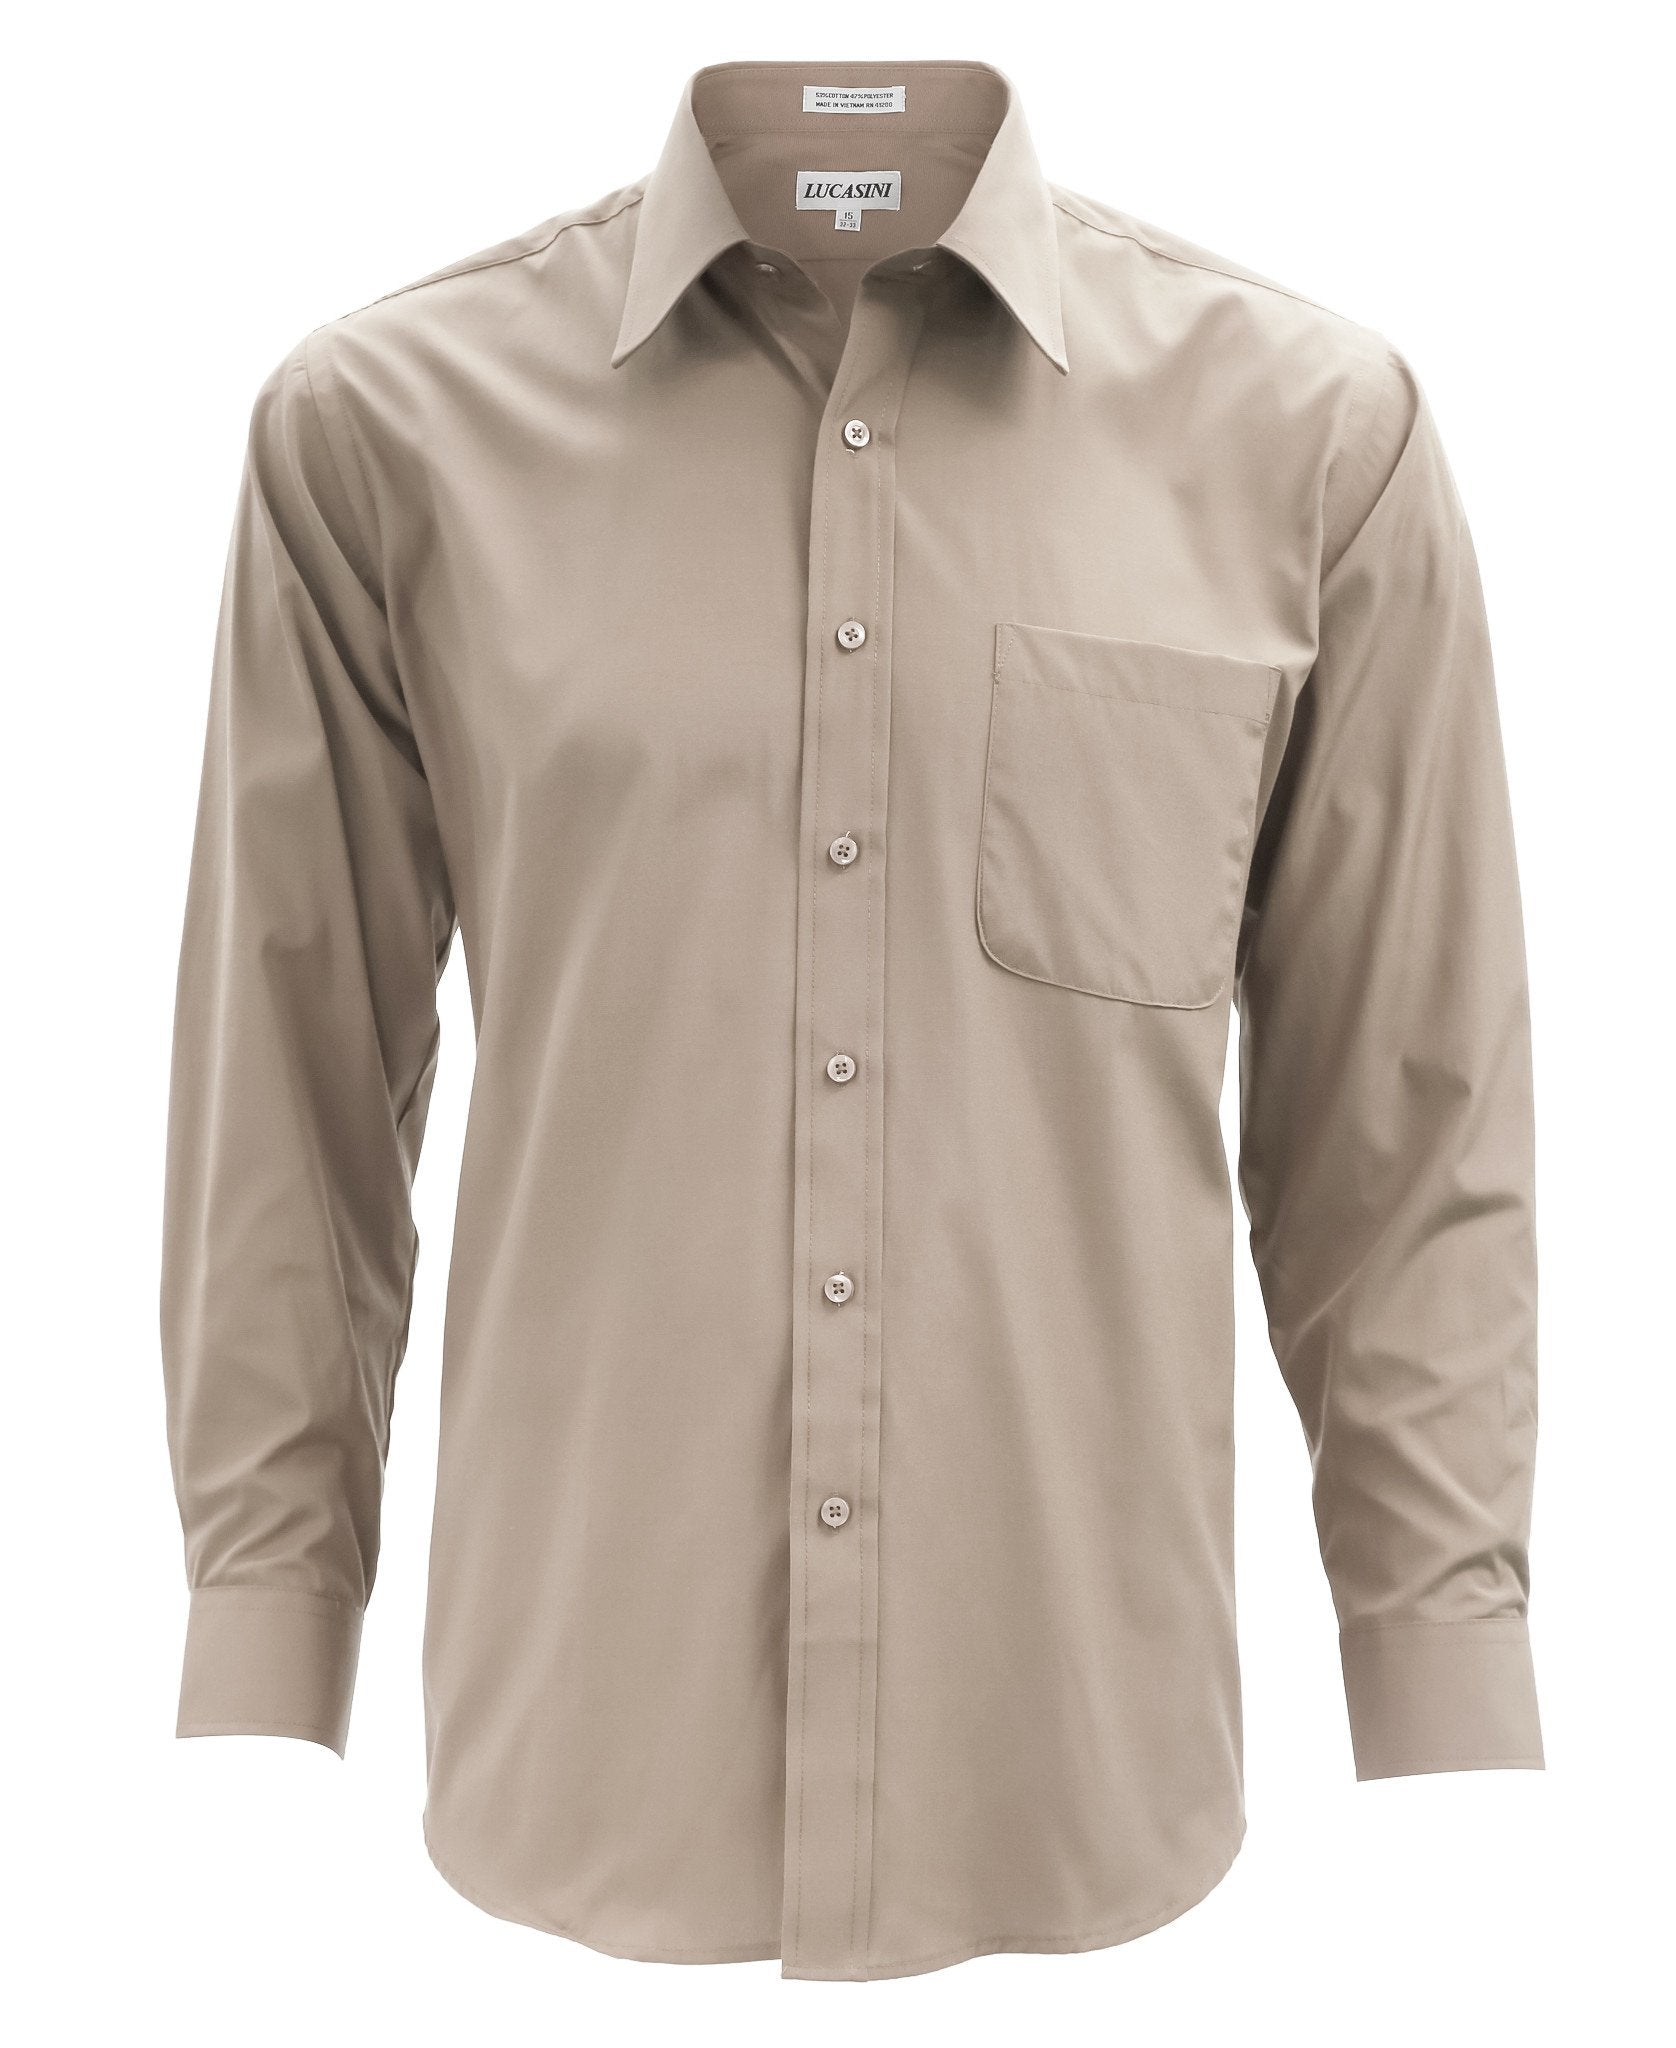 Lucasini Mens Tan Regular Fit 300 Series Dress Shirt - Giorgio's Menswear